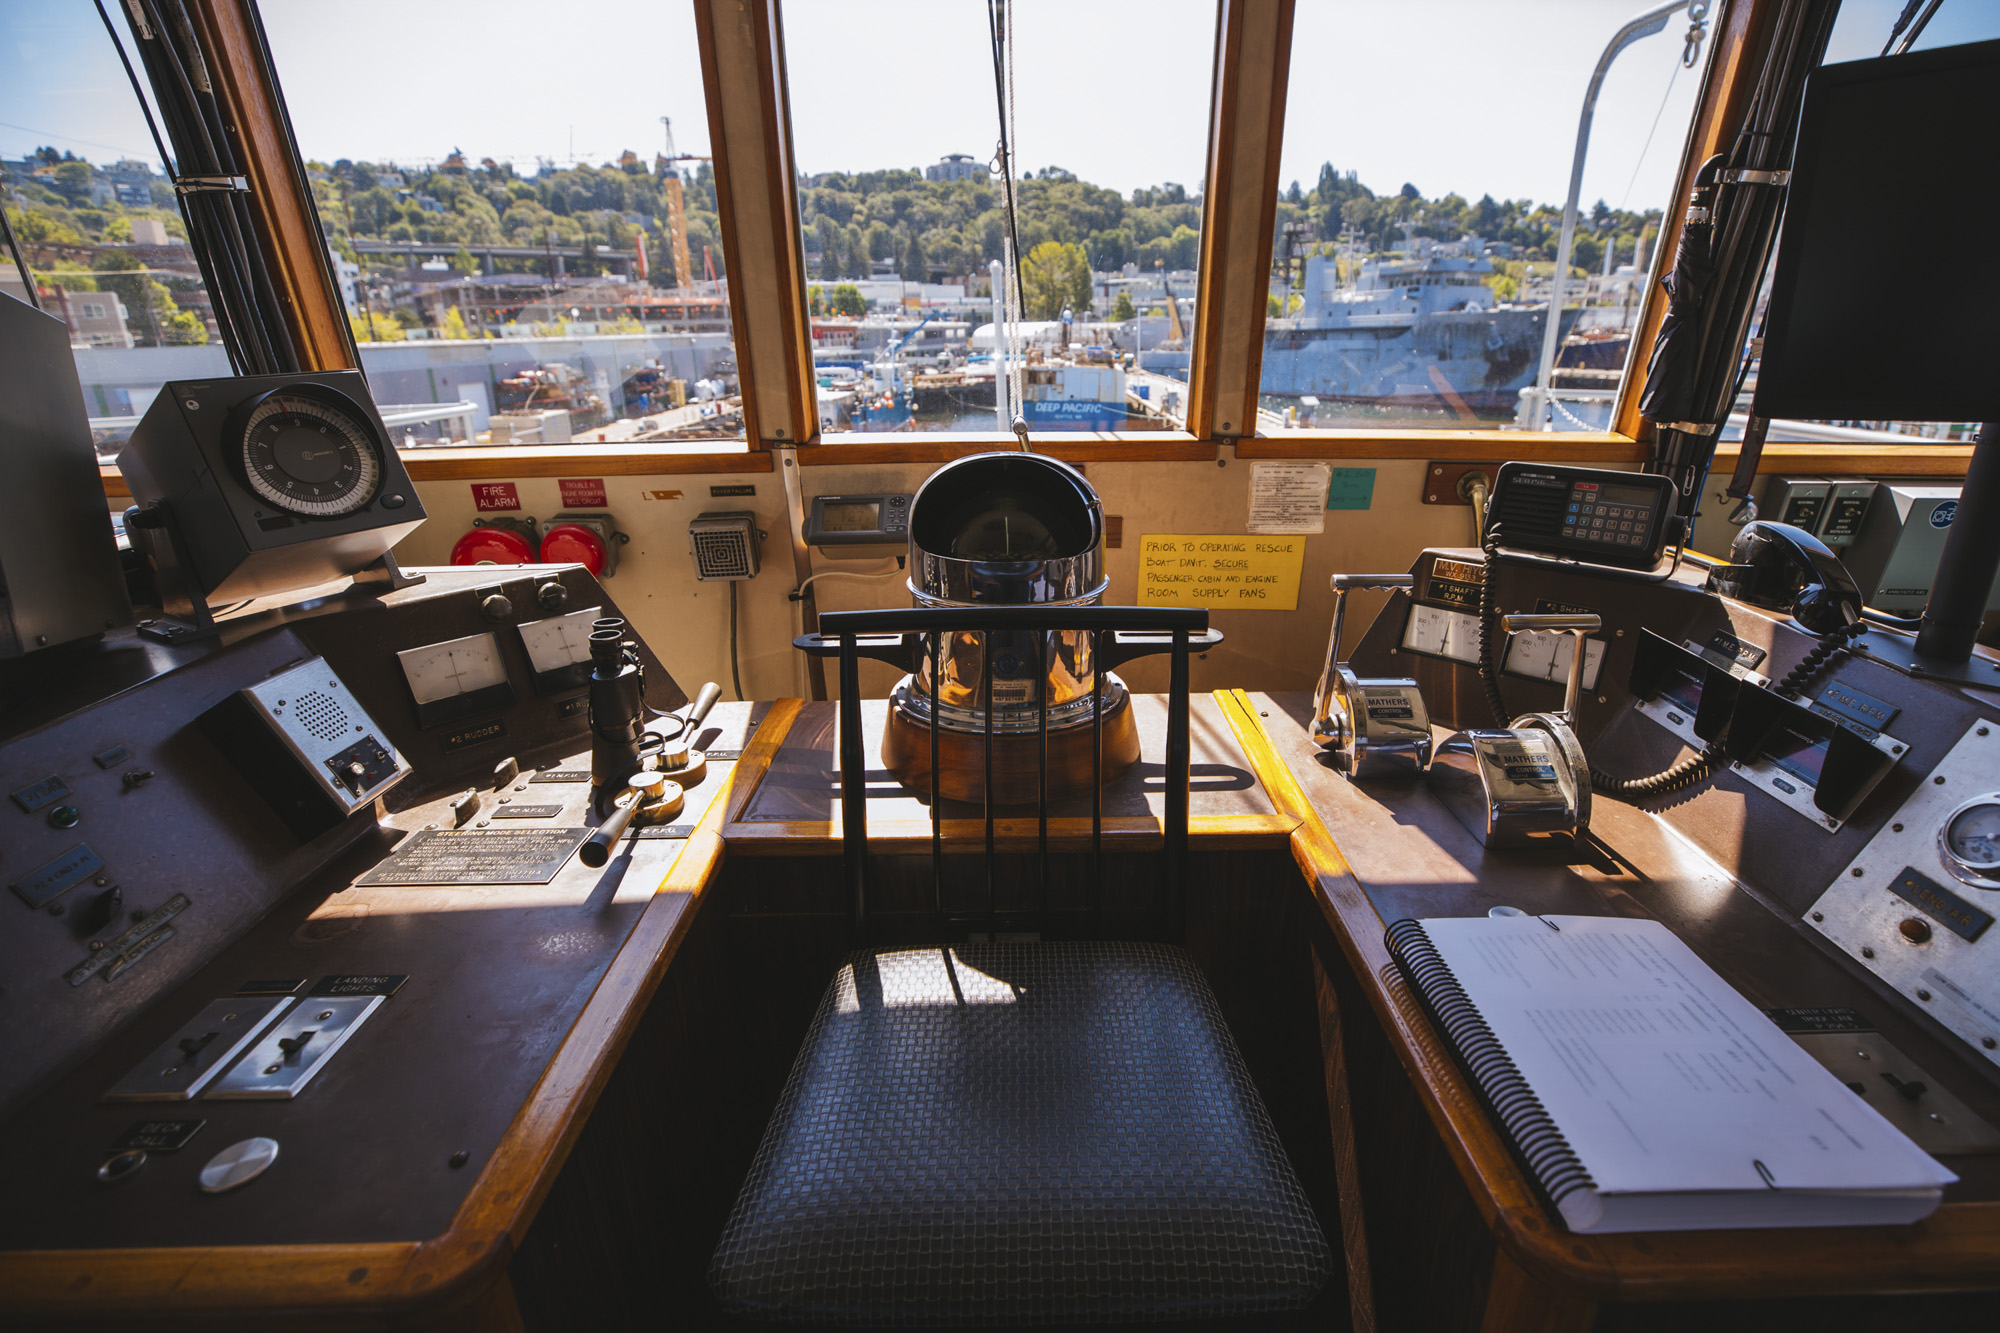 <p>It's 162 feet of floating fun and entertainment, and it probably looks a little familiar. Built in 1967, The Hiyu retired two years ago from the Washington State Ferry System and was promptly purchased by now-owner Jeff Wilson. It took a year to get the Hiyu in shape for{&amp;nbsp;}all kinds of events, like corporate parties, birthdays, and it's a hot ticket for weddings. The ferry turned party boat comes with two bars and a food trailer! Interested in renting this beaut out? Check out onthehiyu.com (Image: Sunita Martini / Seattle Refined)</p>